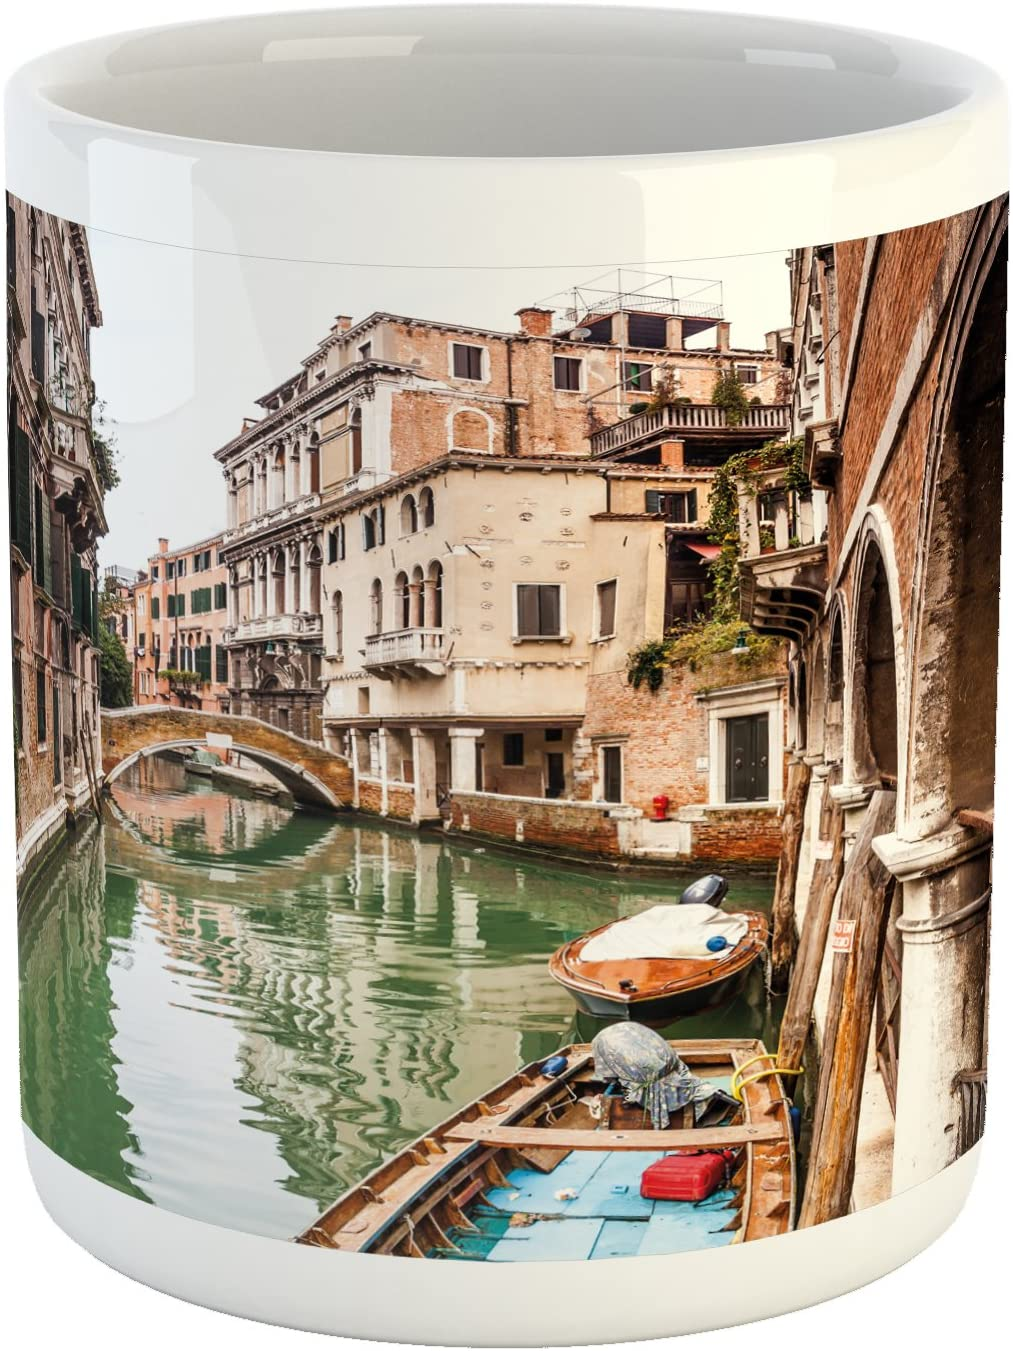 Ambesonne Venice Mug, Famous Water Canals in Italy Boats Bridge Brickwork Architecture Old City, Ceramic Coffee Mug Cup for Water Tea Drinks, 11 oz, Brown Green